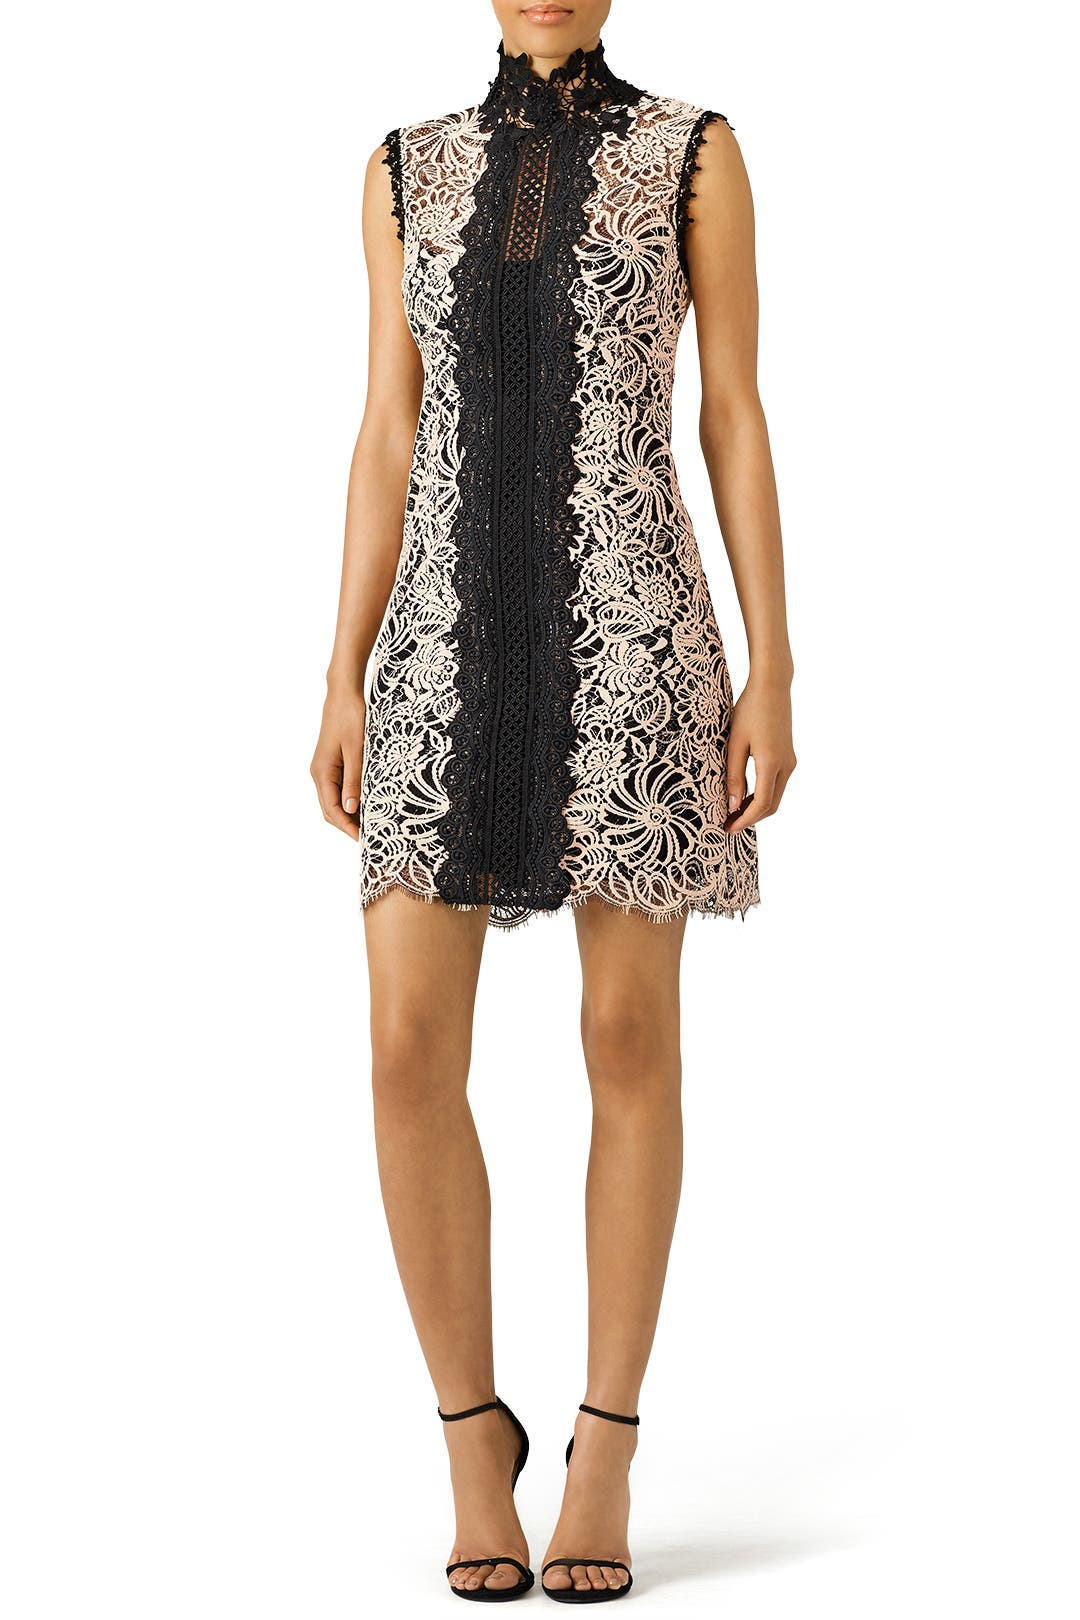 Lace Paramour Dress By Nanette Lepore For 55 75 Rent